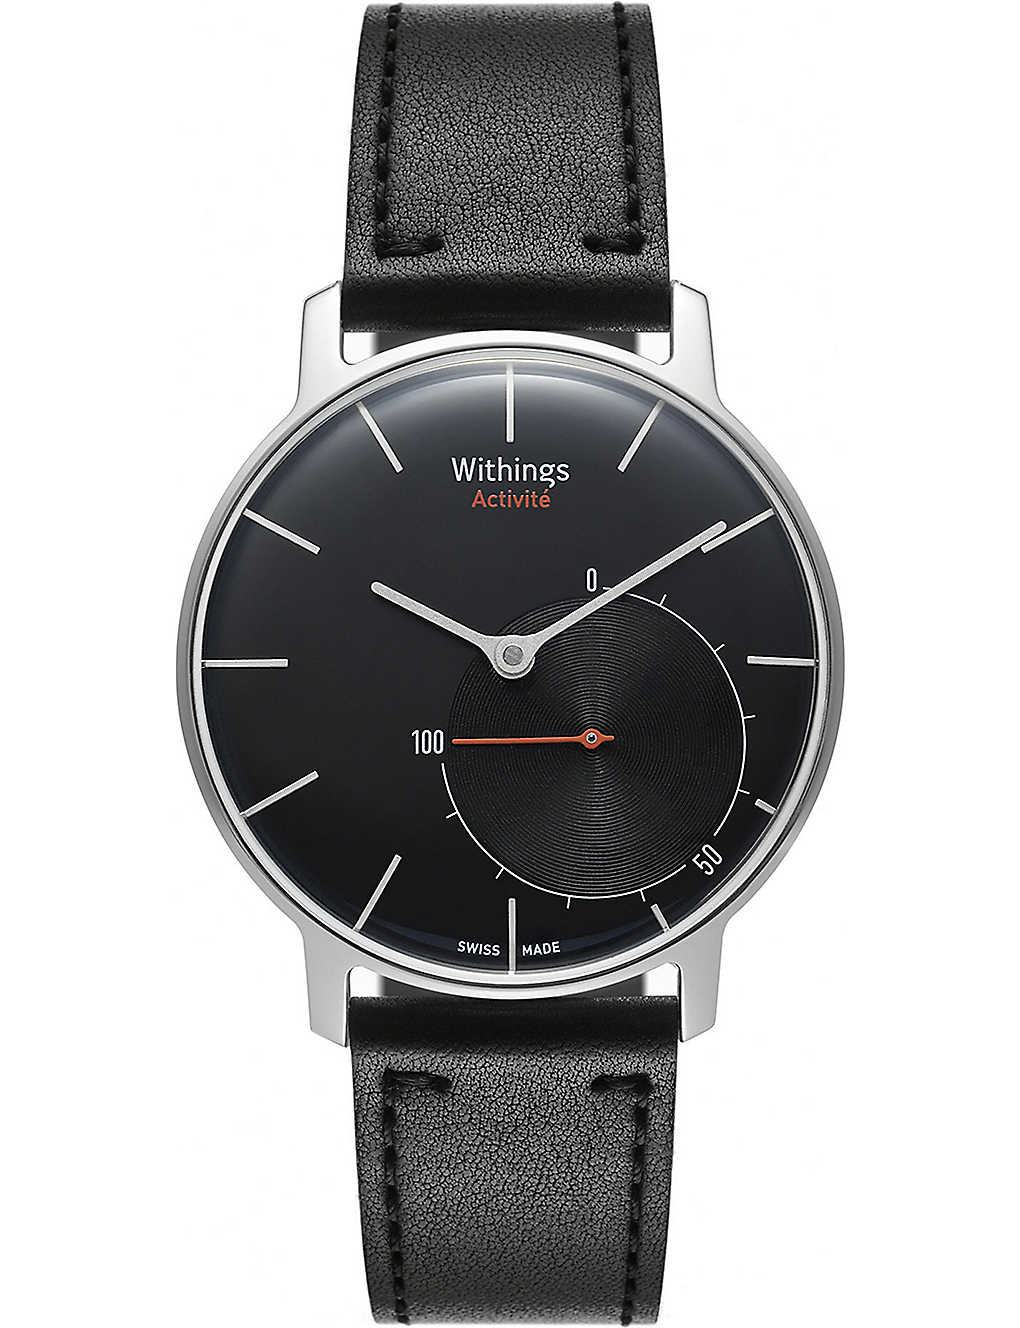 WITHINGS: Activité smartwatch